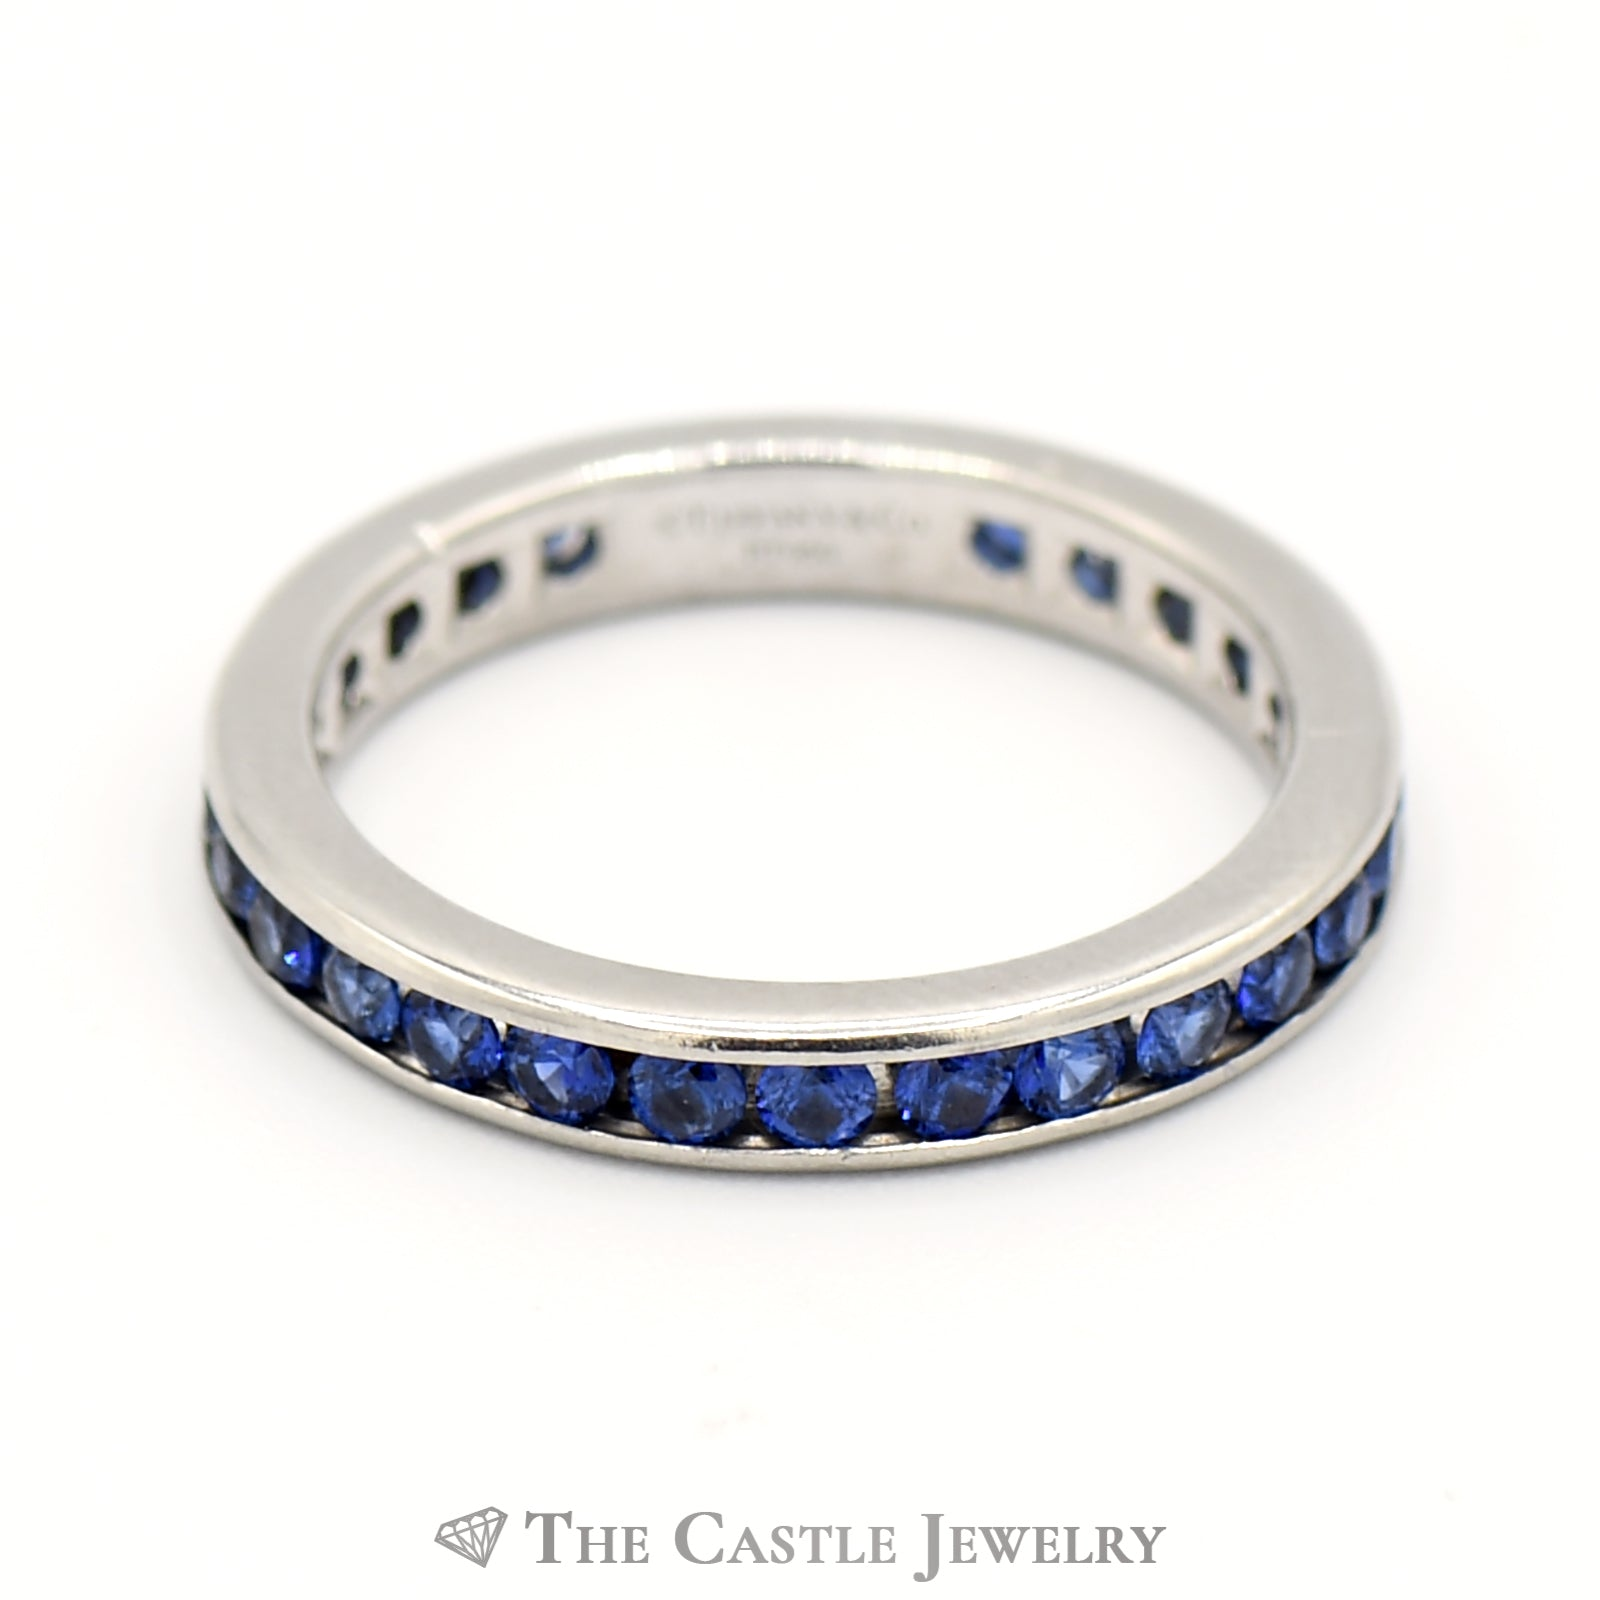 Tiffany & Company Platinum And Sapphire Eternity Band